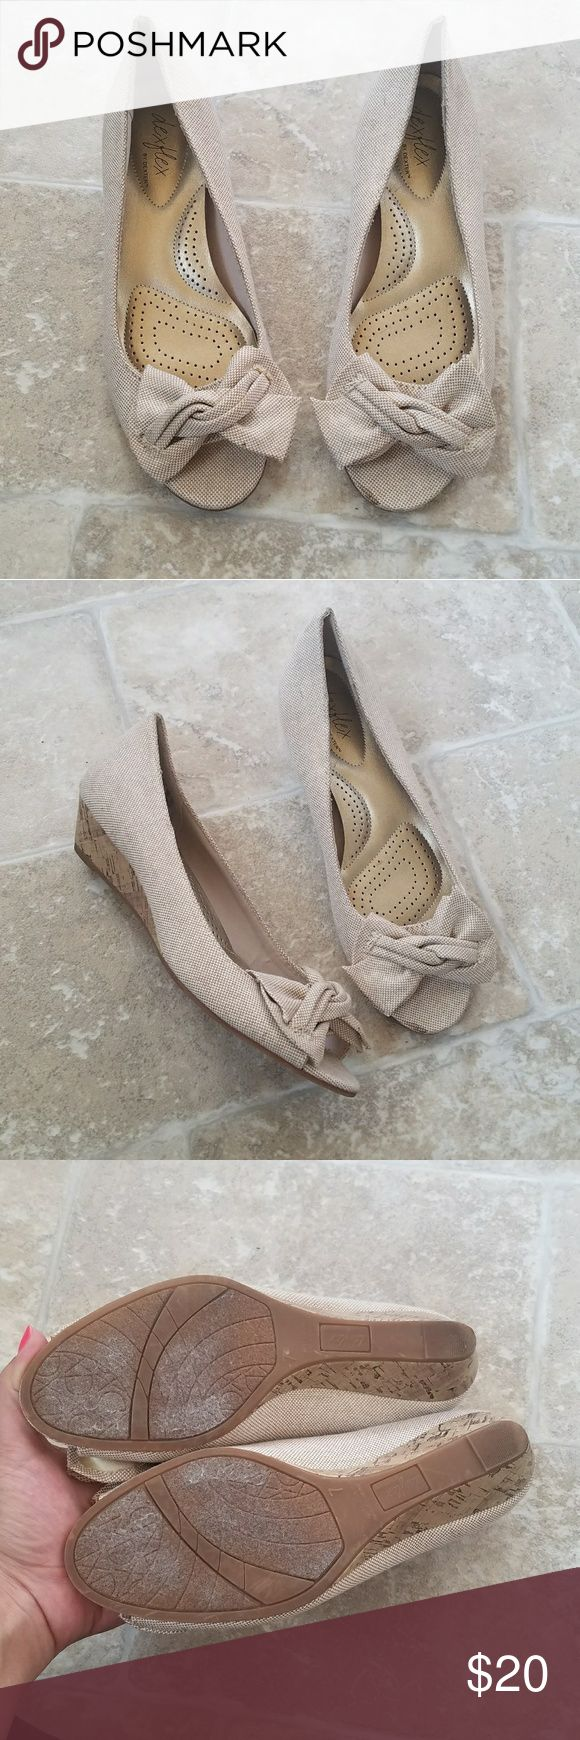 Dexflex Comfort Cream Bow Open Toe Wedges Gently used . Cushion sole for comfort .  #062704 Dexflex Comfort Shoes Wedges